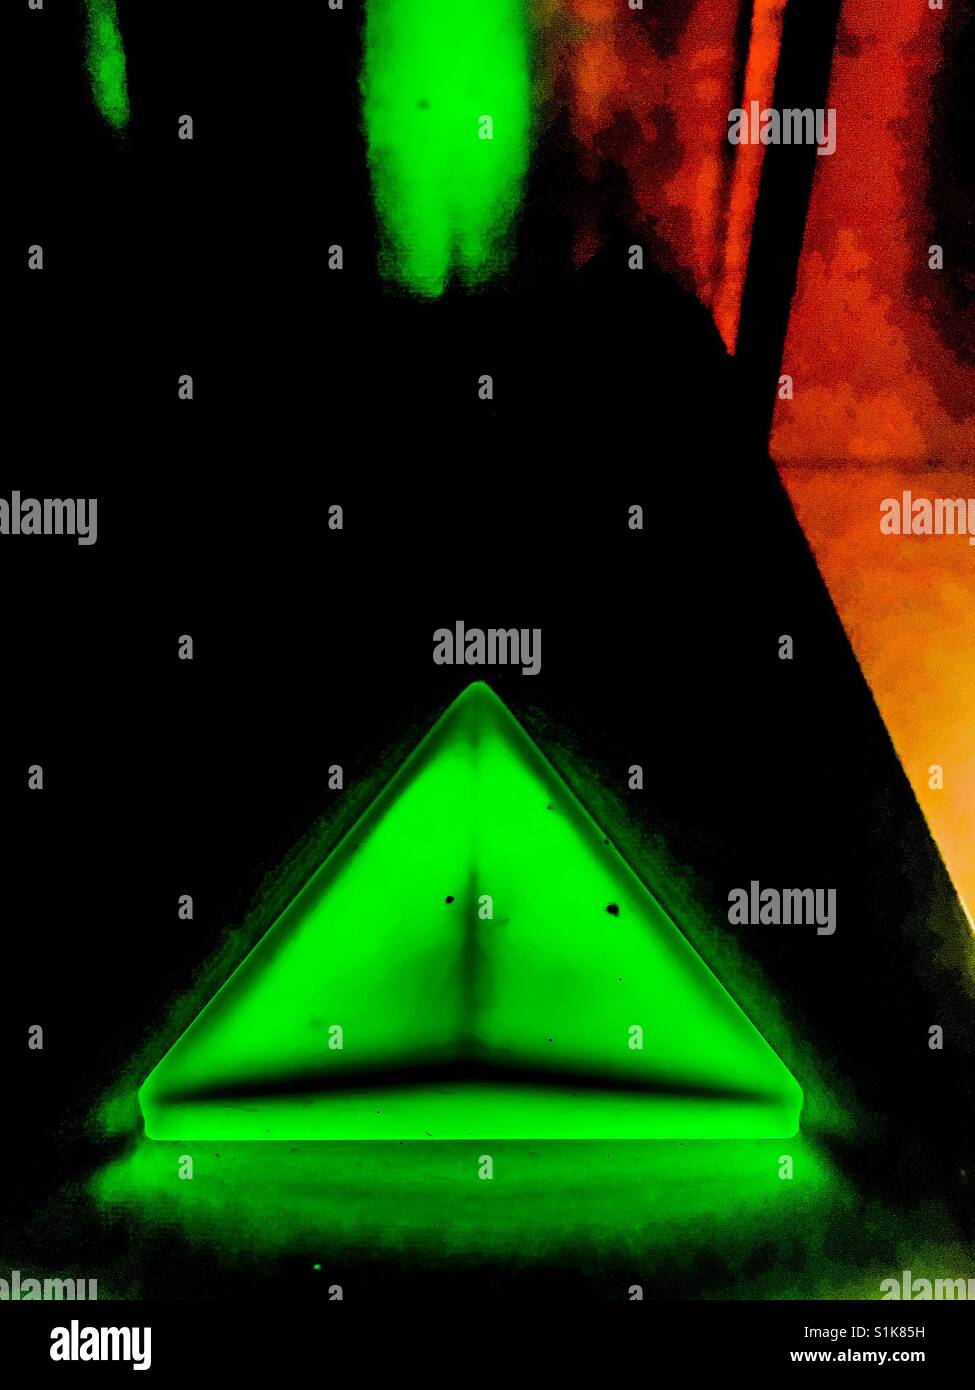 Neon up arrow - Stock Image